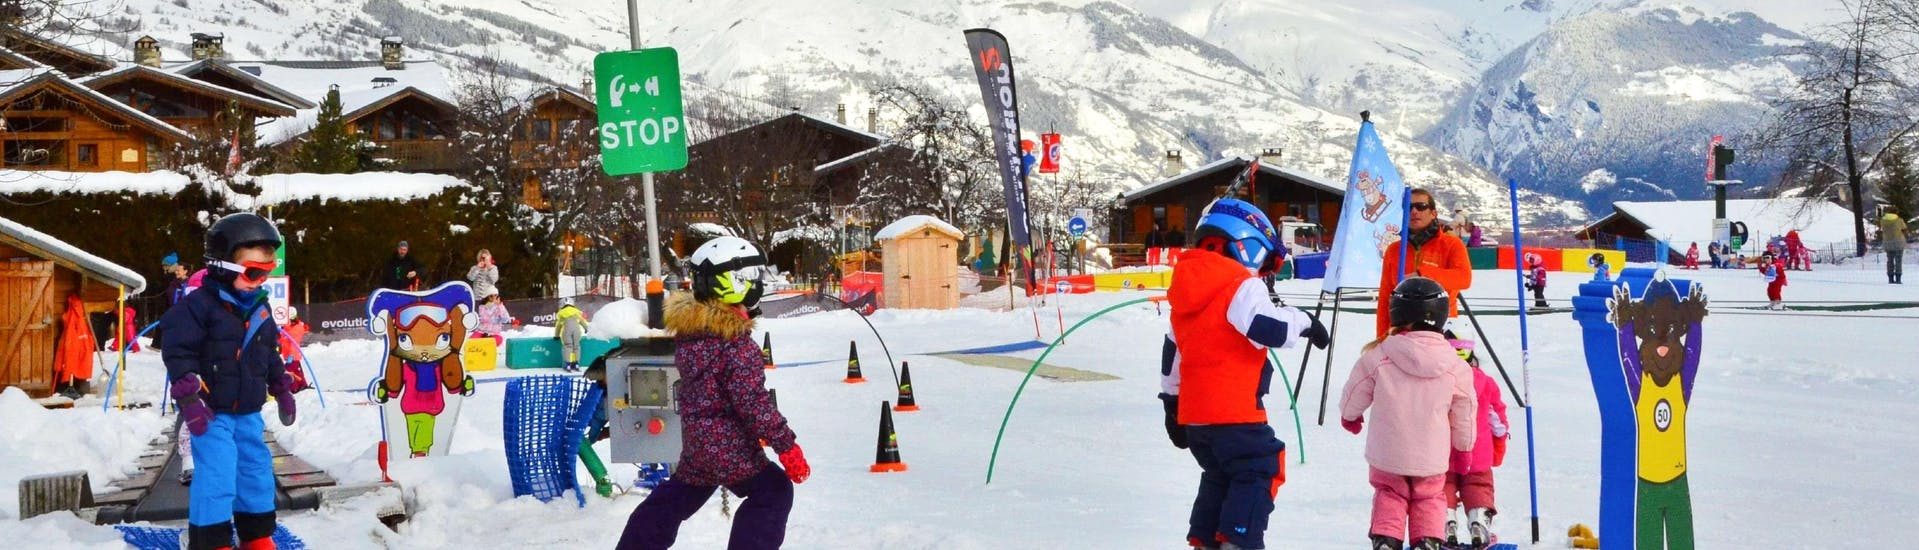 kids-ski-lessons-3-4-y-for-first-timers-christmas-evo2-la-plagne-hero